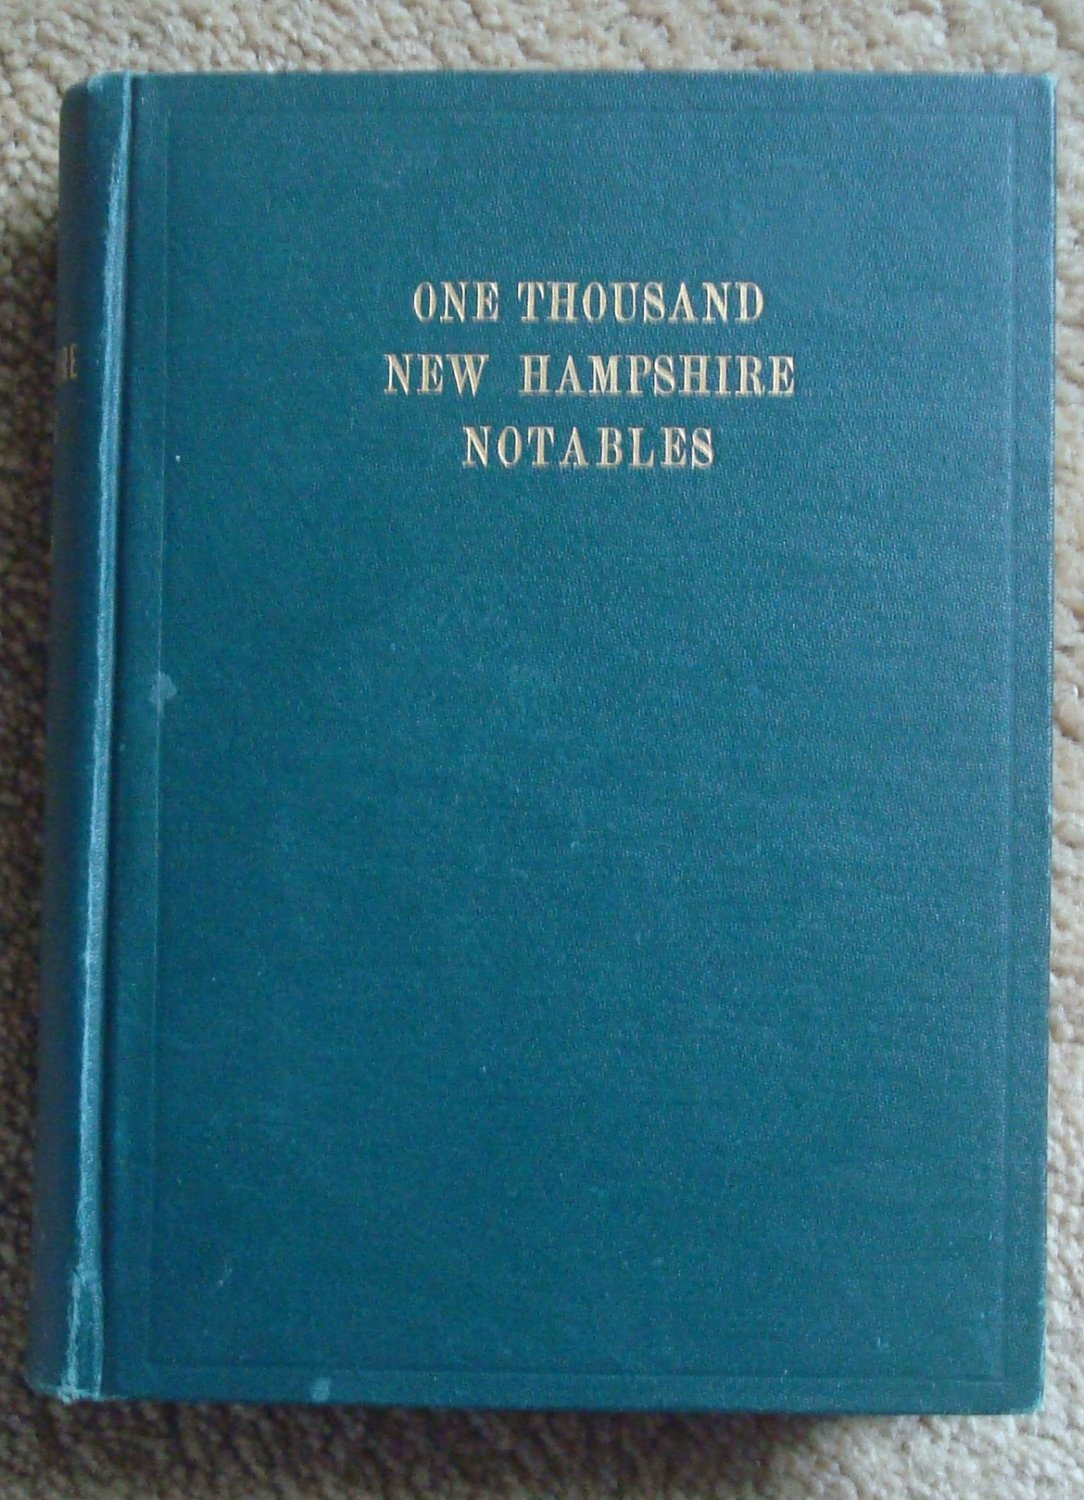 One Thousand New Hampshire Notables